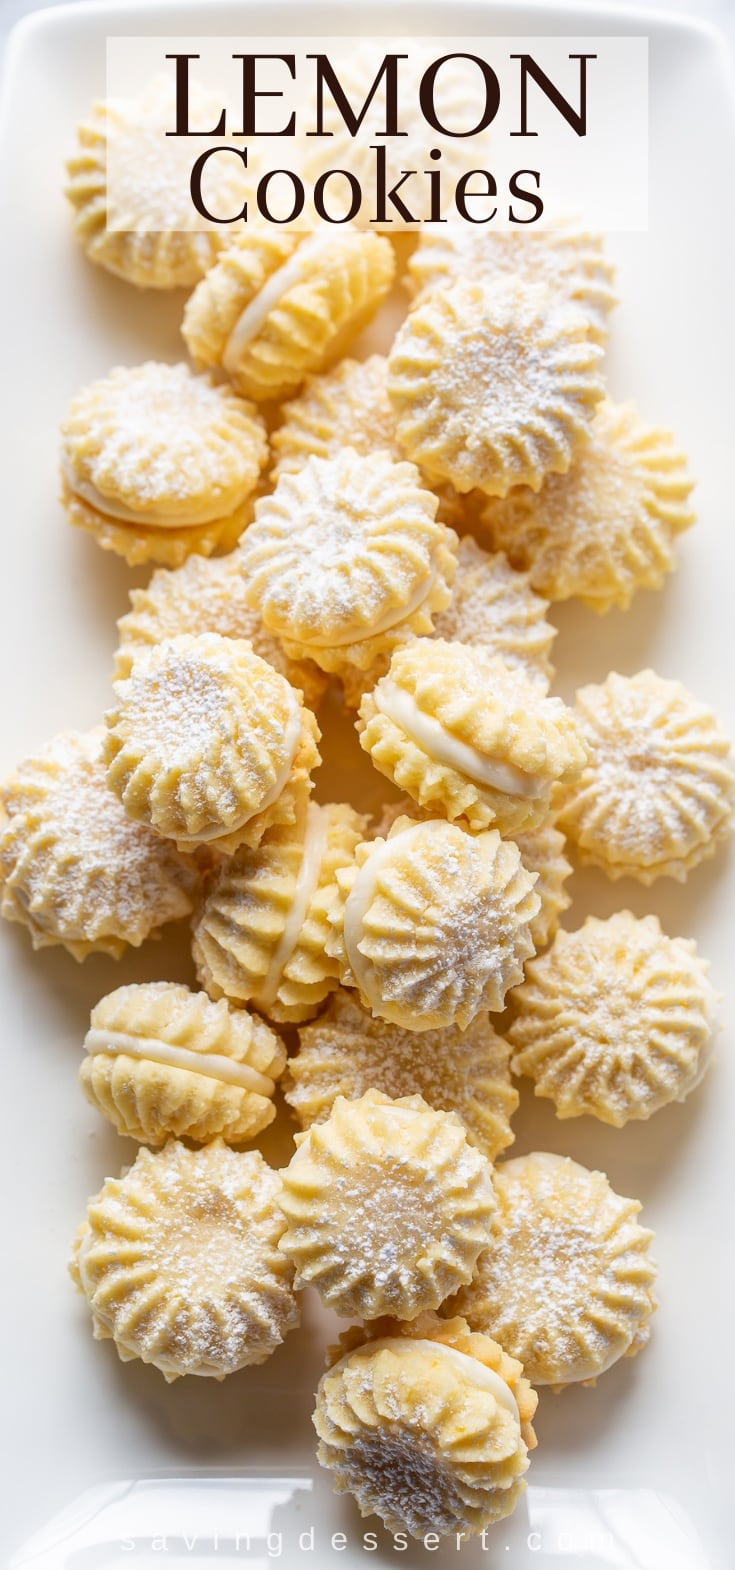 A platter of pretty piped lemon cookies with a lemon cream filling